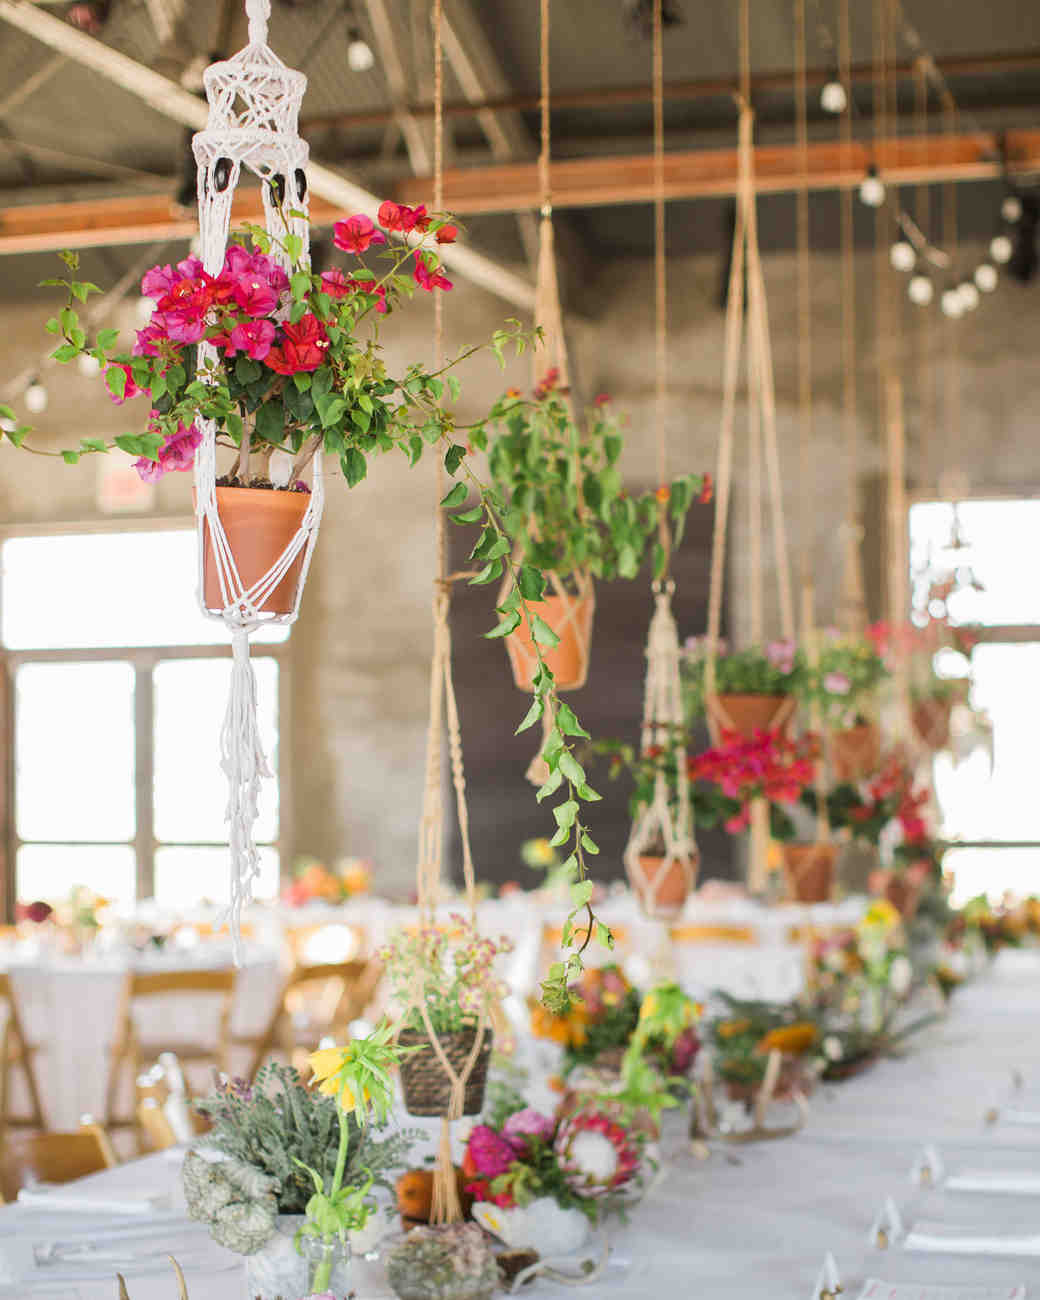 50 wedding centerpiece ideas we love martha stewart weddings - Centerpiece Ideas